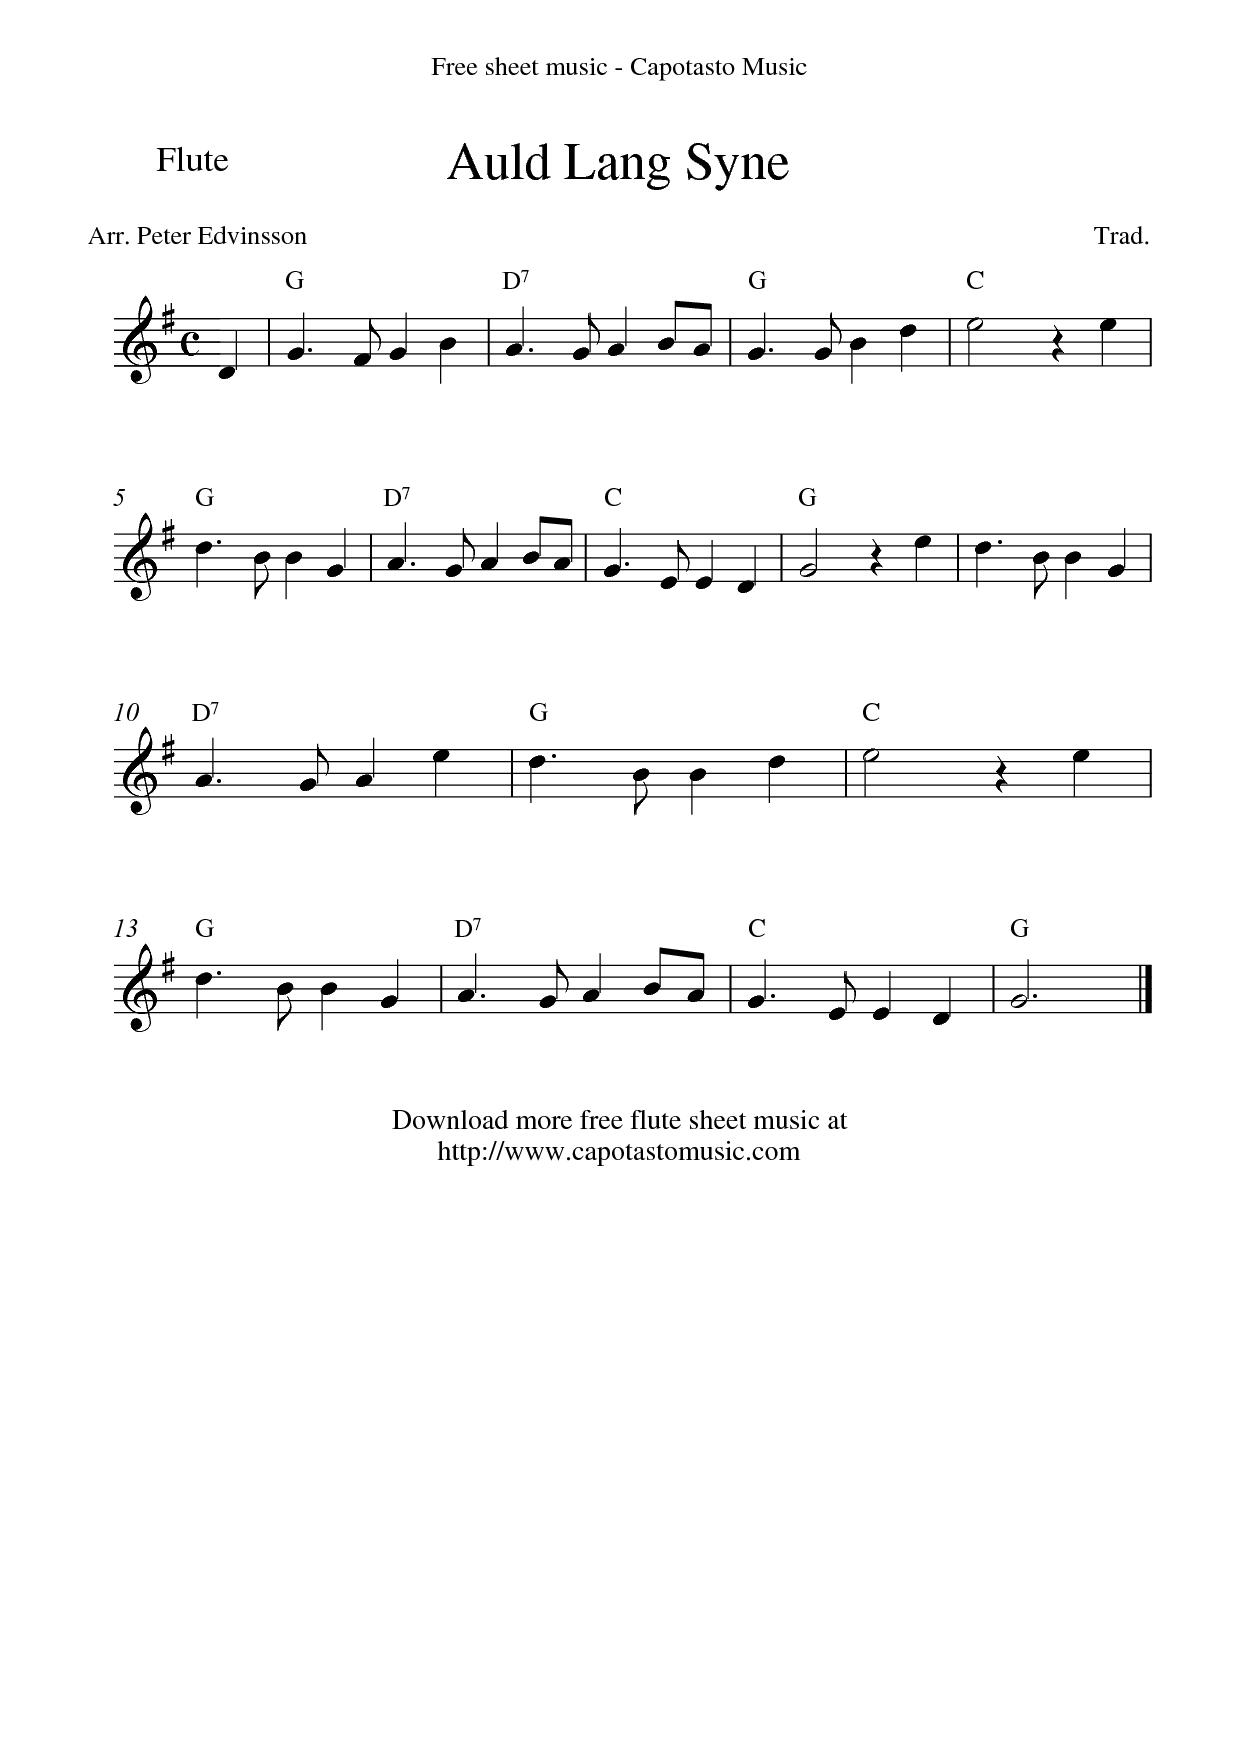 image regarding Printable Flute Sheet Music called Simple Flute Sheet Audio Absolutely free basic printable sheet Sheet